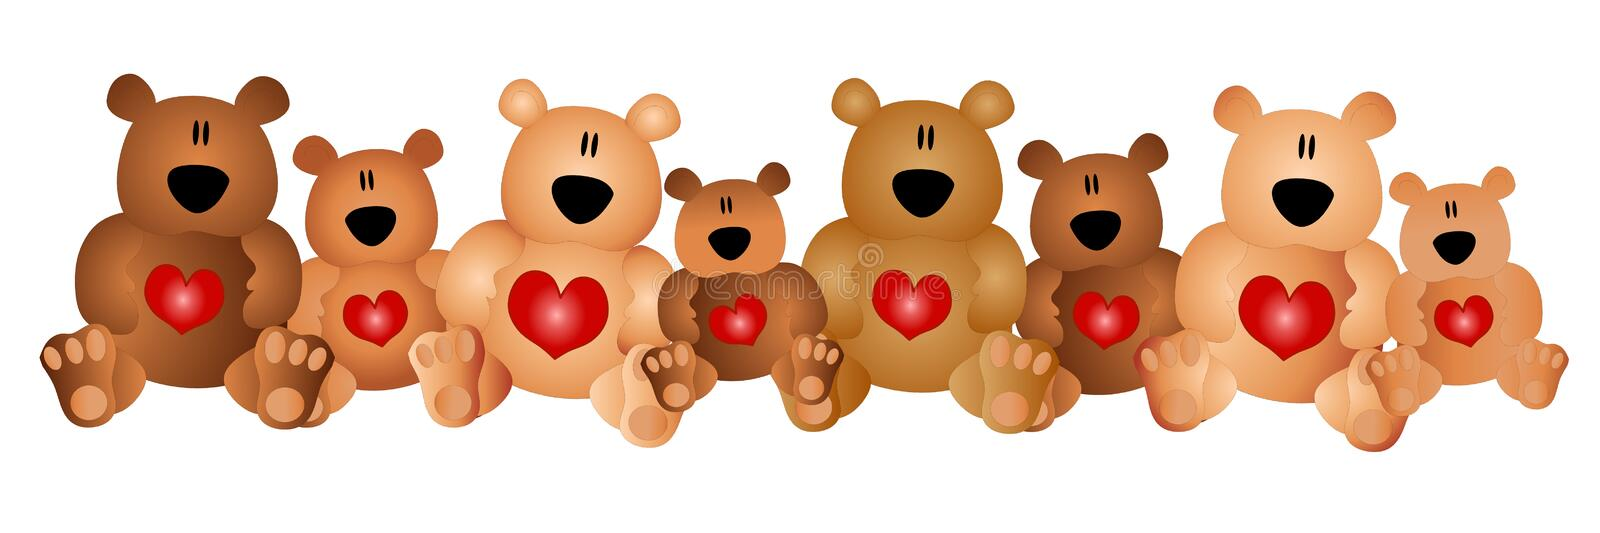 Row of Cute Teddy Bears With Hearts. A clip art illustration featuring a row of cute brown teddy bears with hearts on their bellies stock illustration